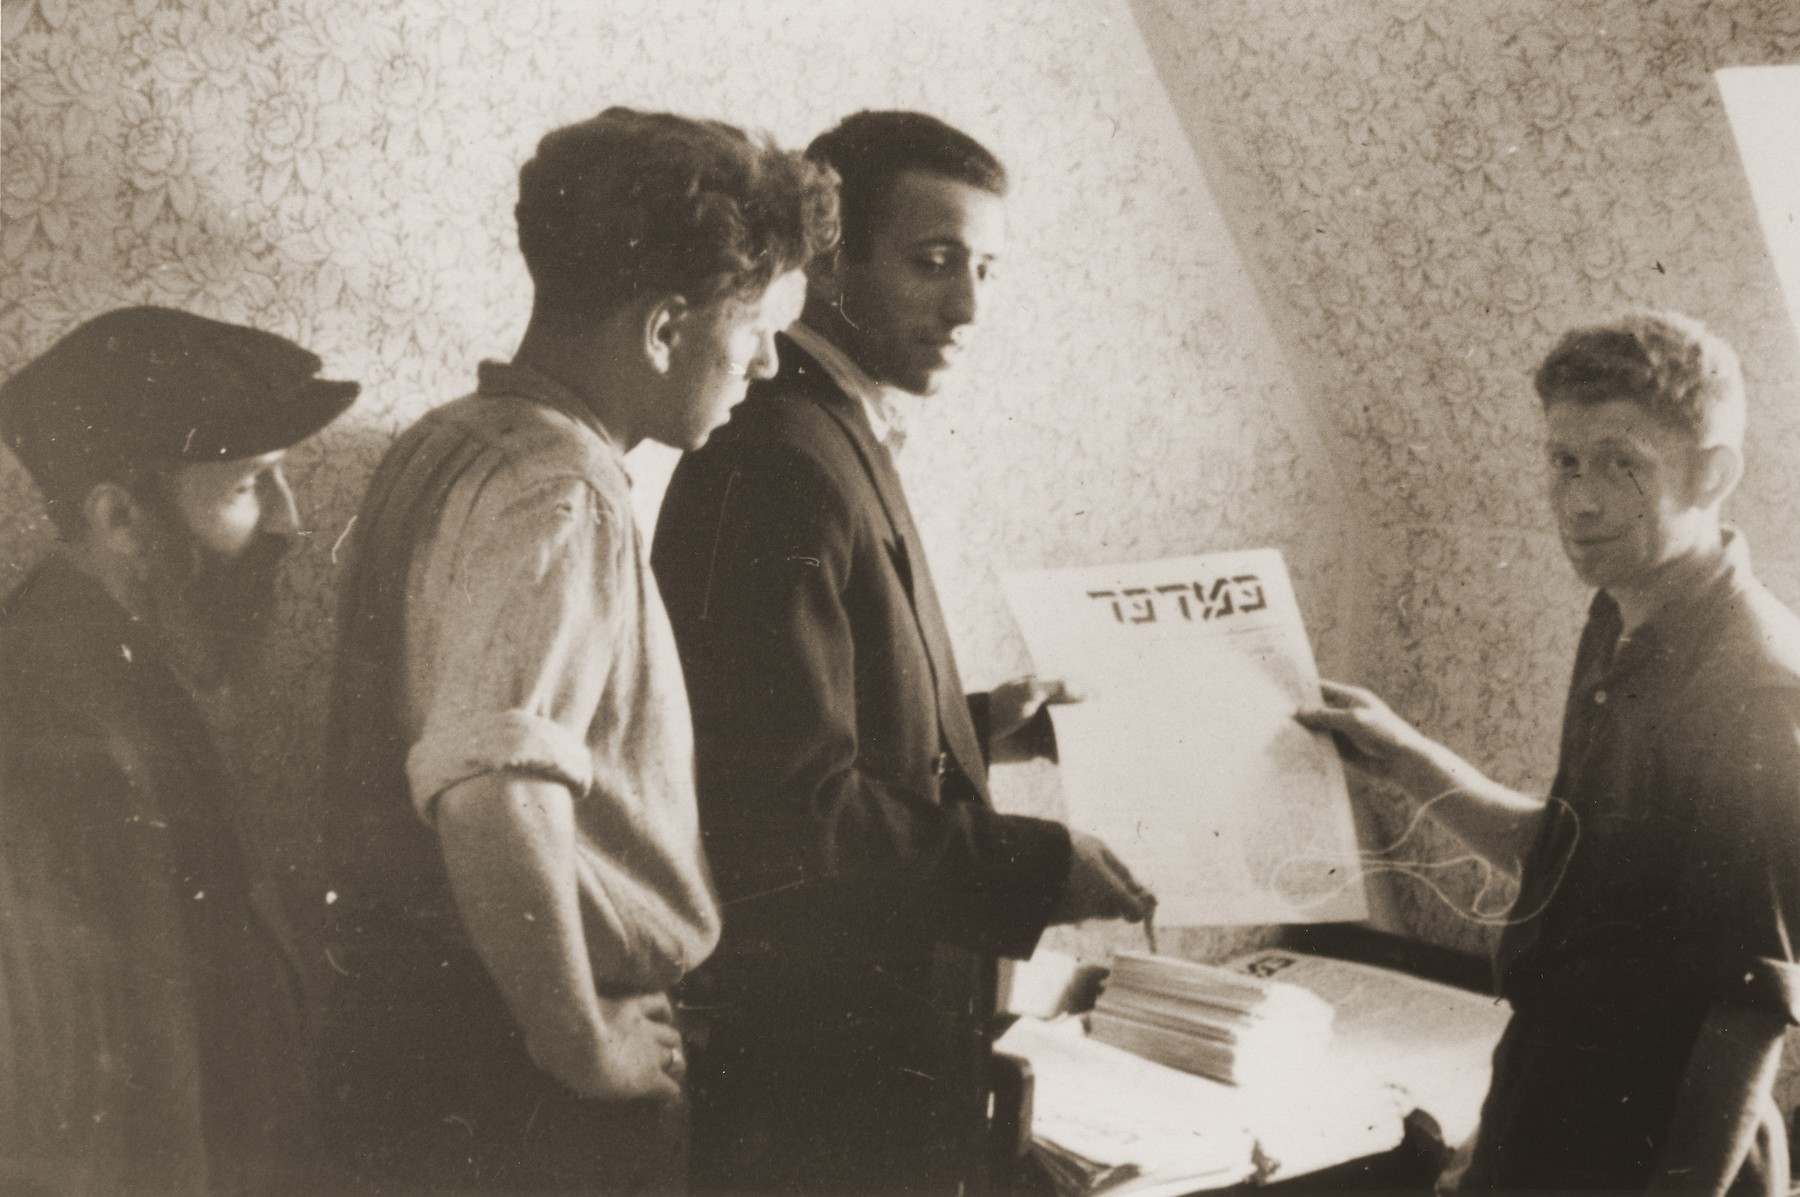 Jewish DPs working in the publications office of the Neu Freimann displaced persons camp hold up the latest issue of the Bamidbar [In the Wilderness] newspaper.